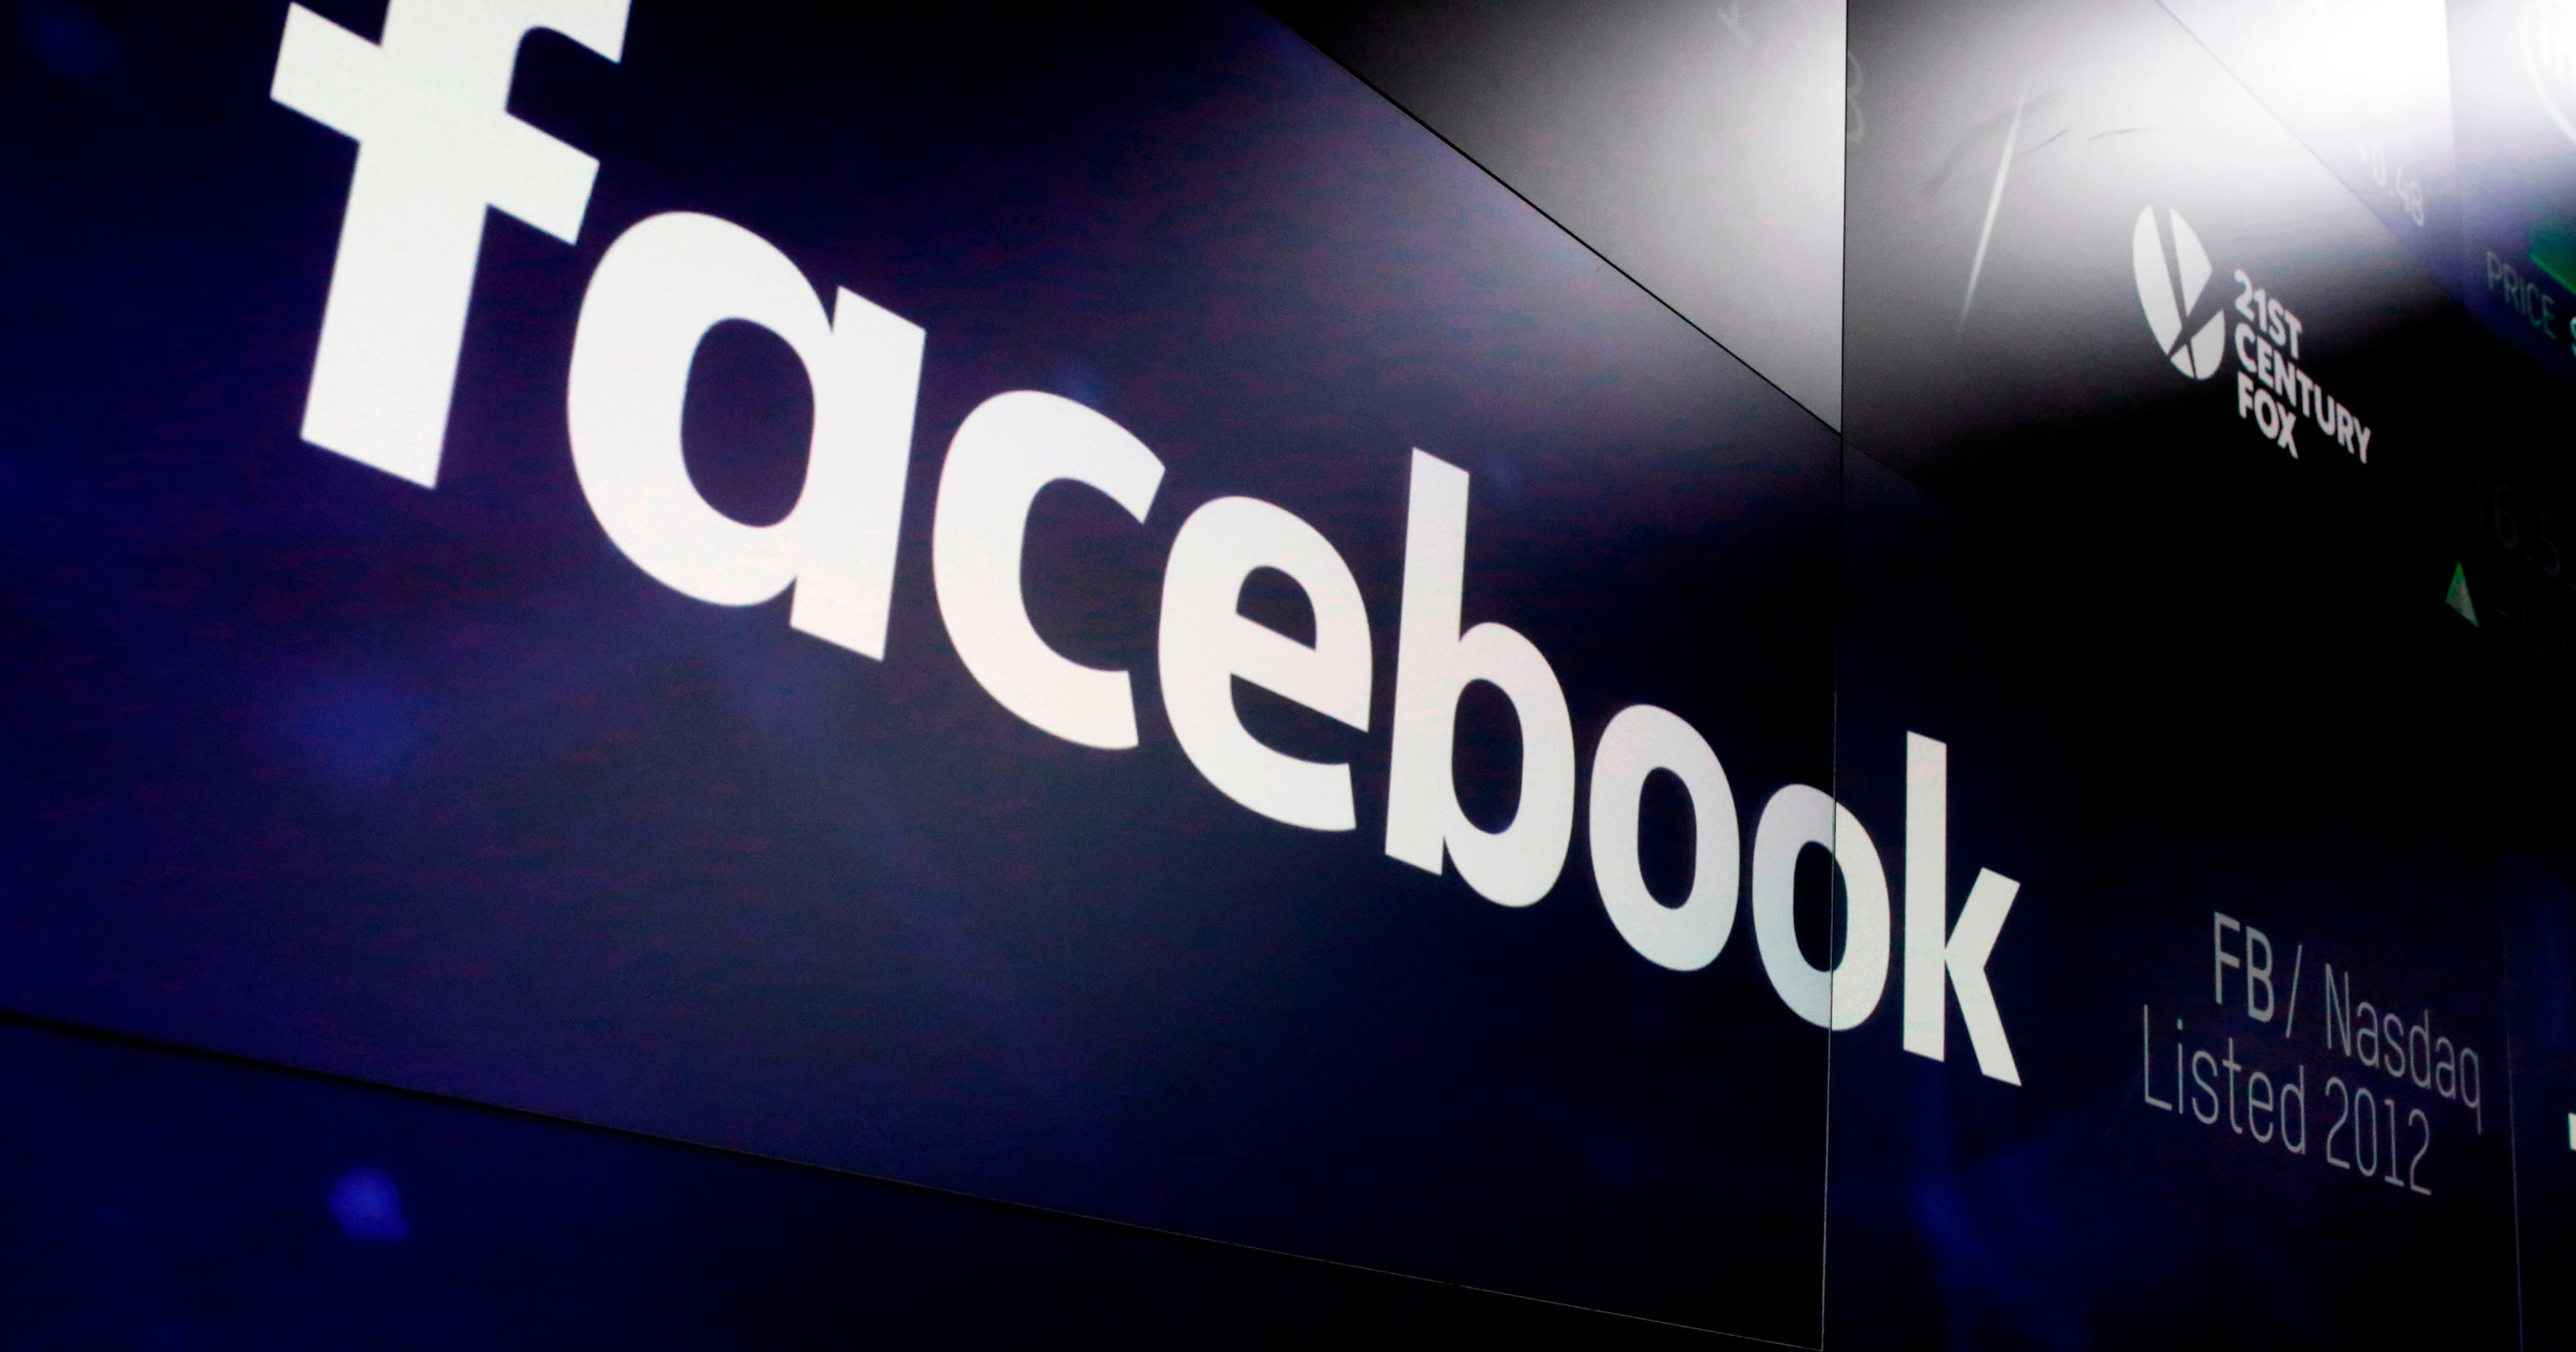 Facebook friend request scam: Here's what you need to know